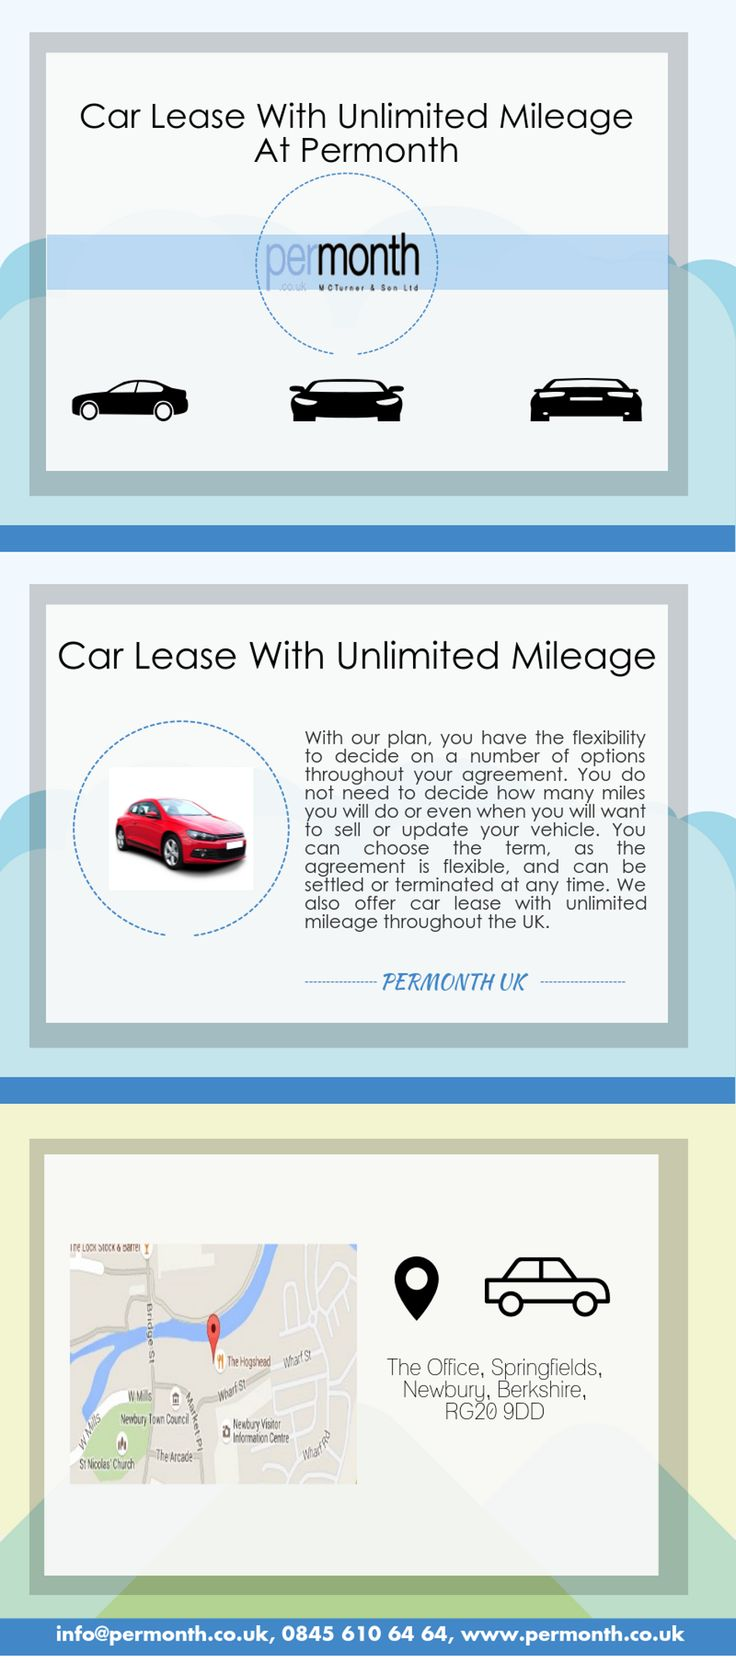 #Car #Lease With #UnlimitedMileage At #Permonth.